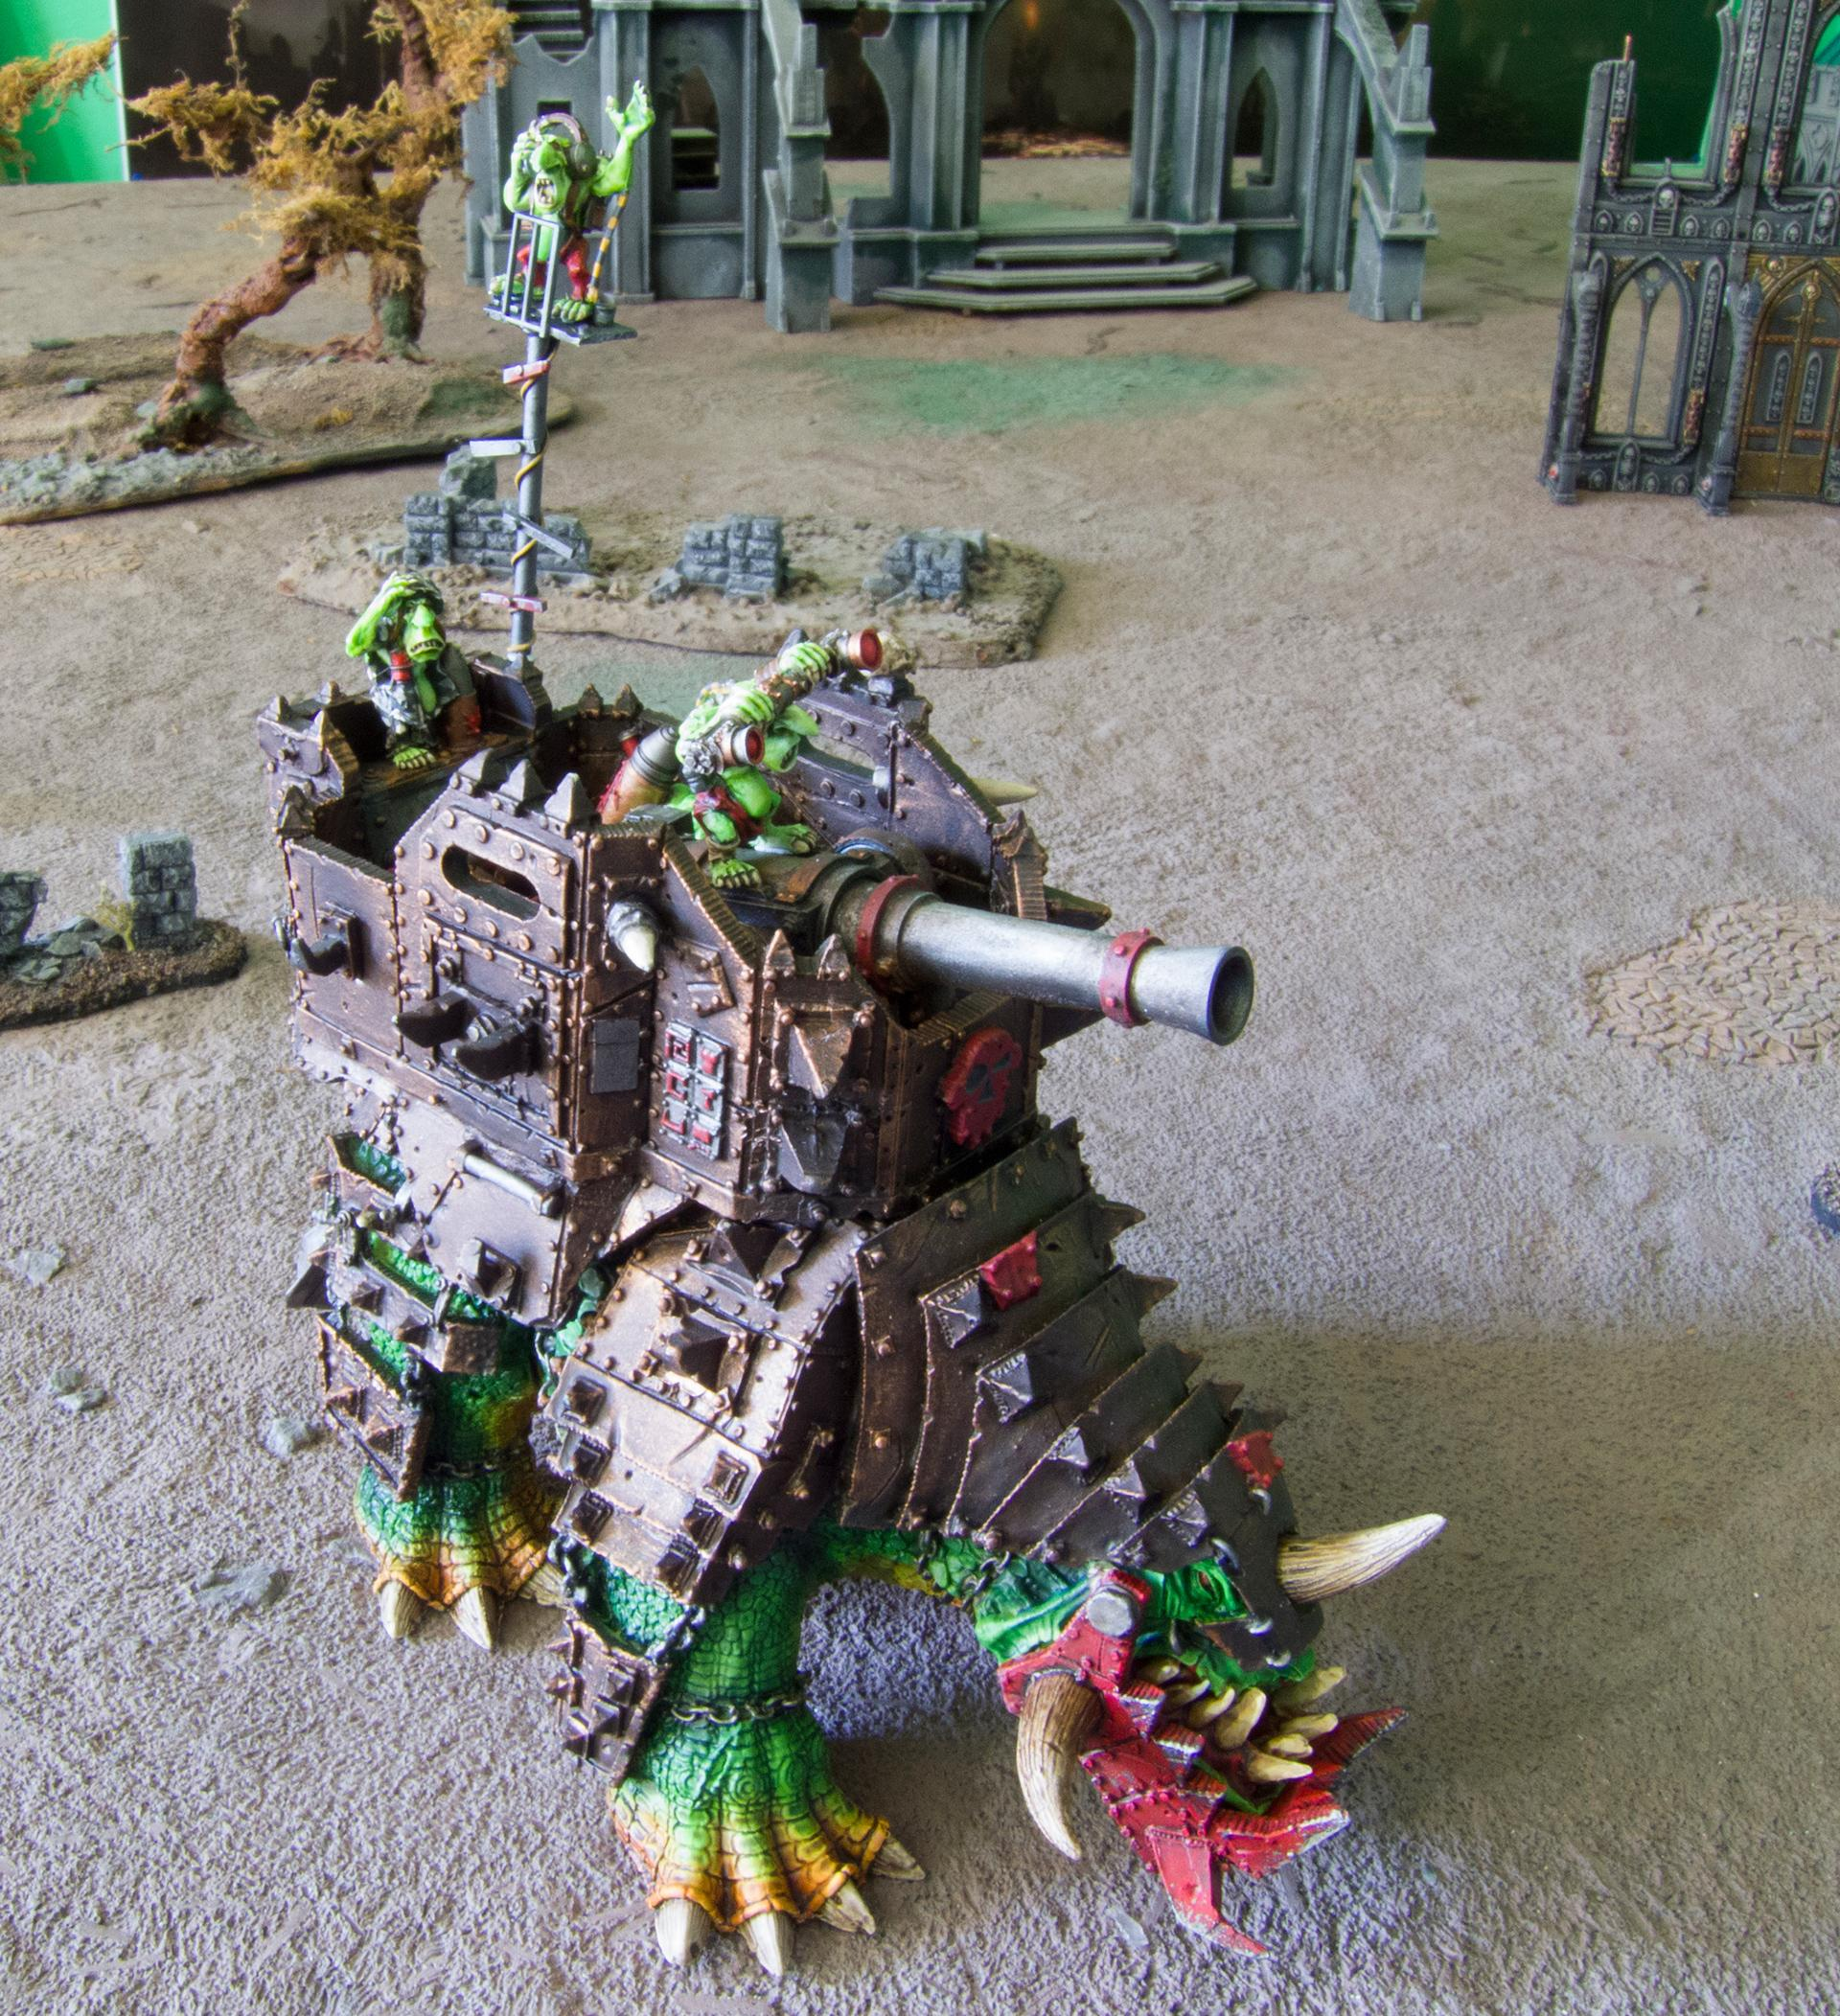 Gretchin, Grots, Orks, Ouze, Squiggoth